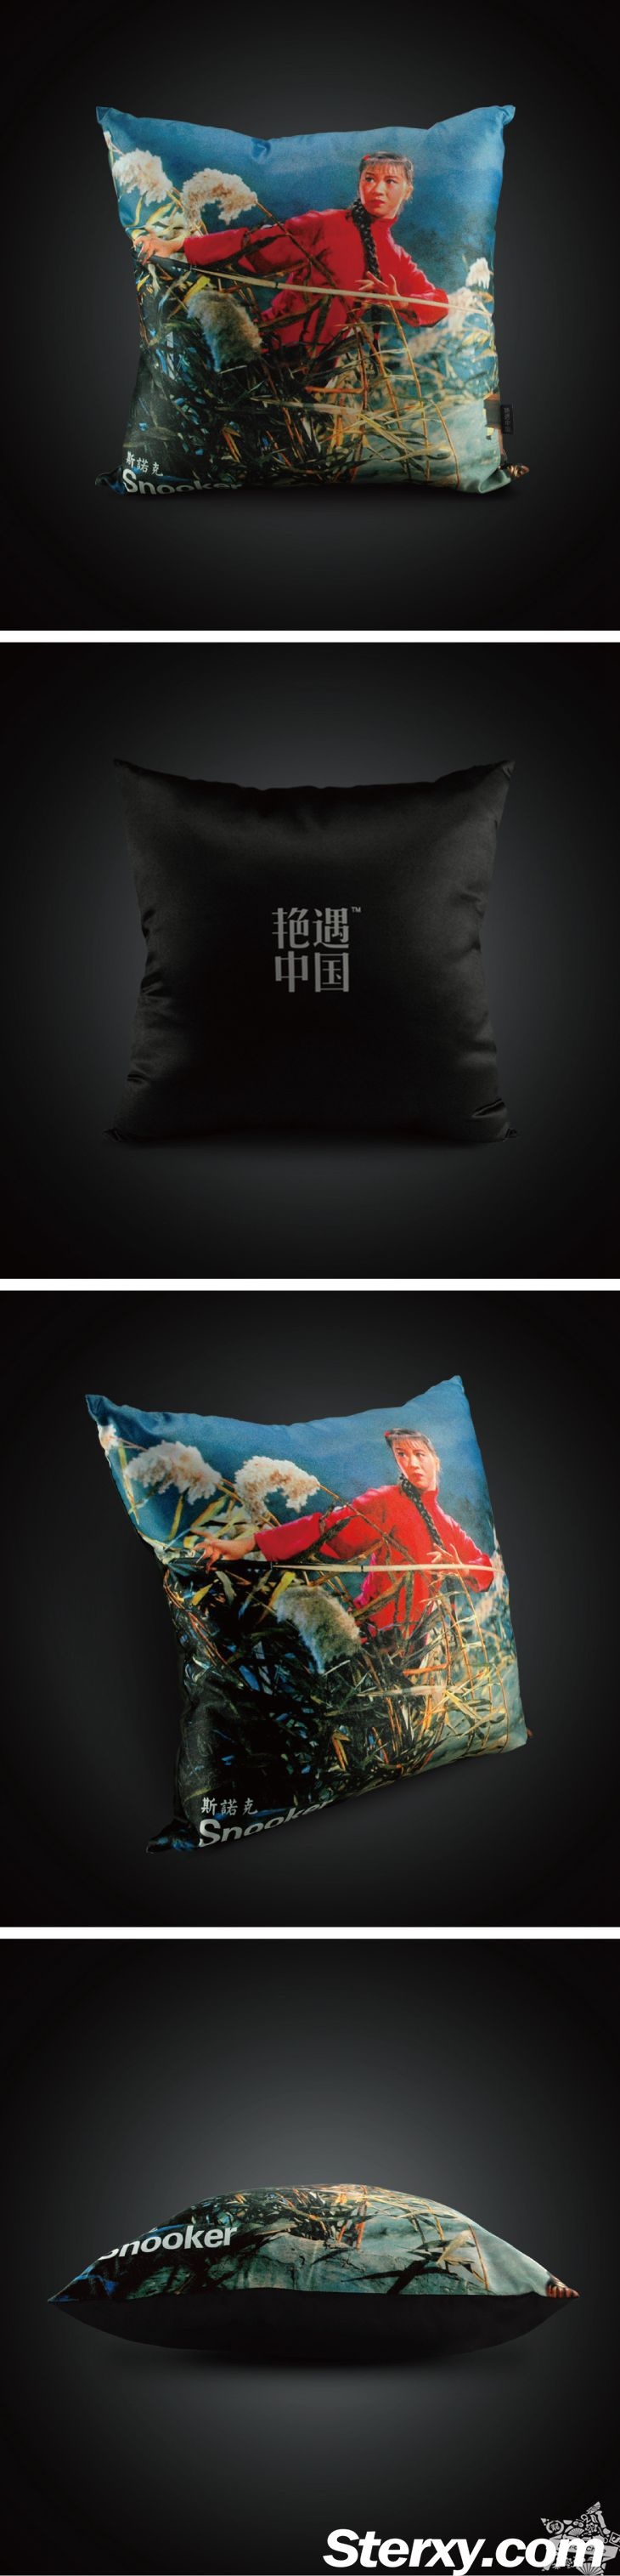 The cushion cover features an Red Army Li Tiemei carrys a snooker cue as weapon to detect enemy in reed marsh. Injecting some humorous elements, this cushion cover will definitely stand out  in any interiors as home decro.